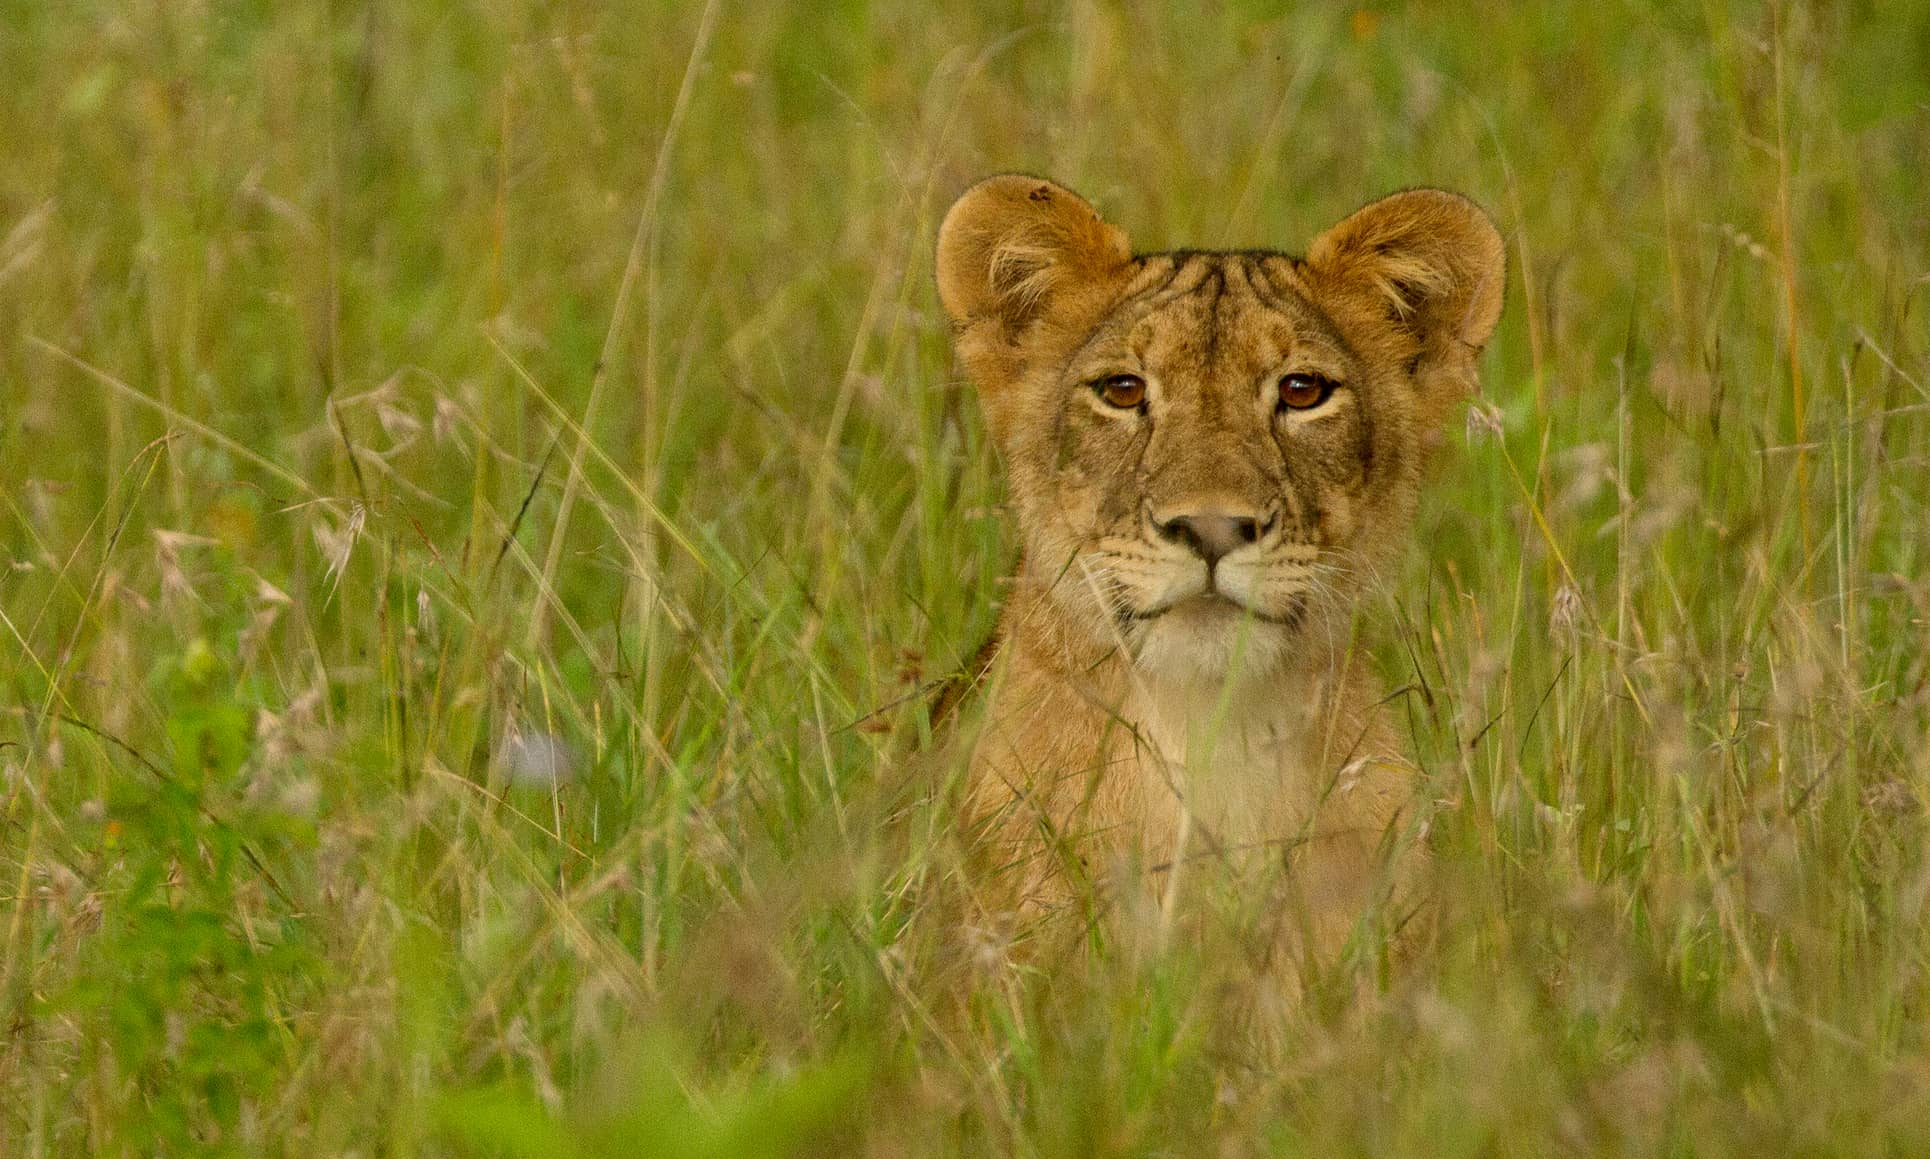 lioness-in-grass-1930x1159 (1)